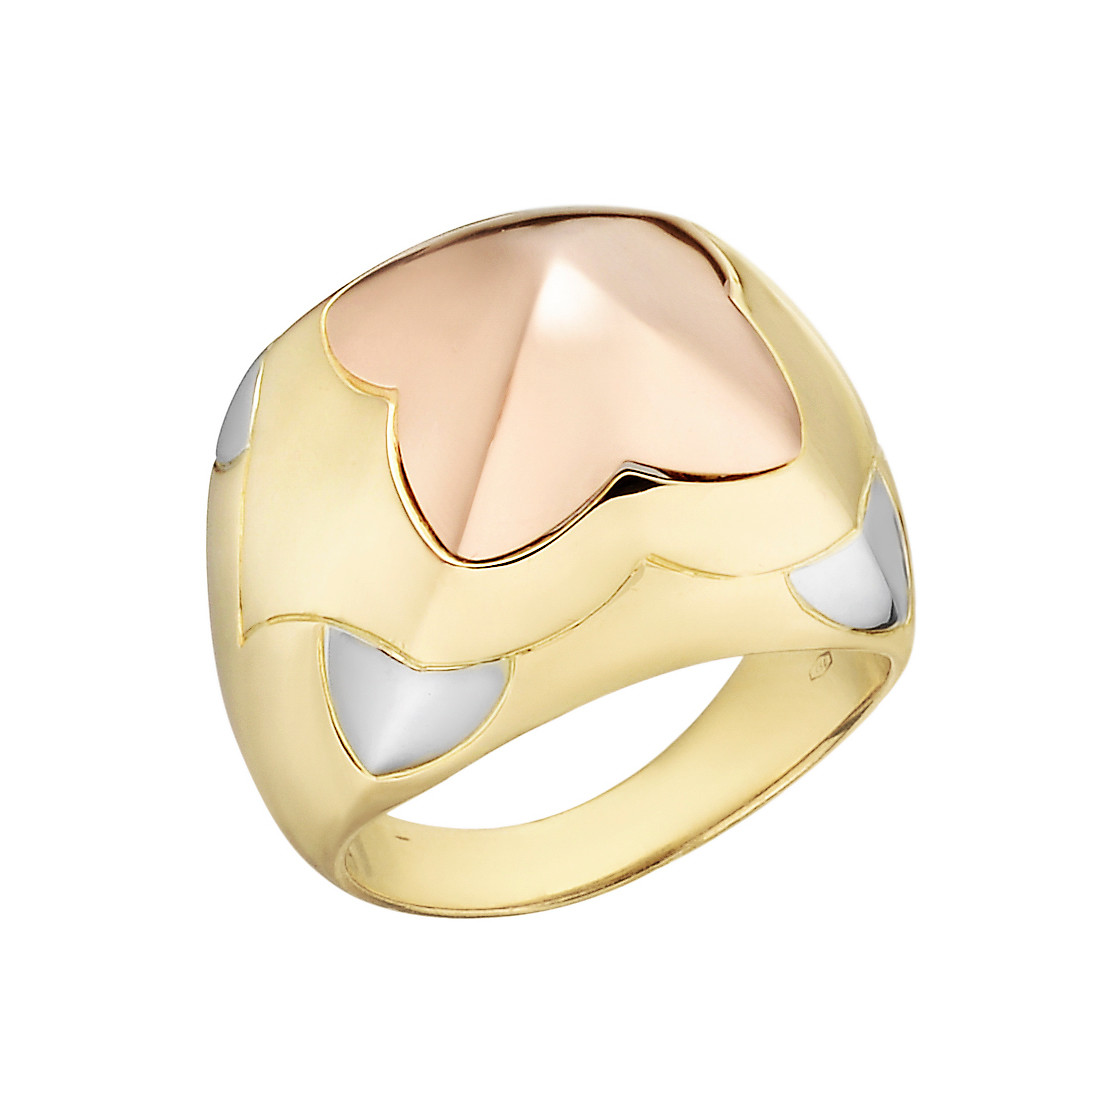 "18k Tricolored Gold ""Piramide"" Cocktail Ring"